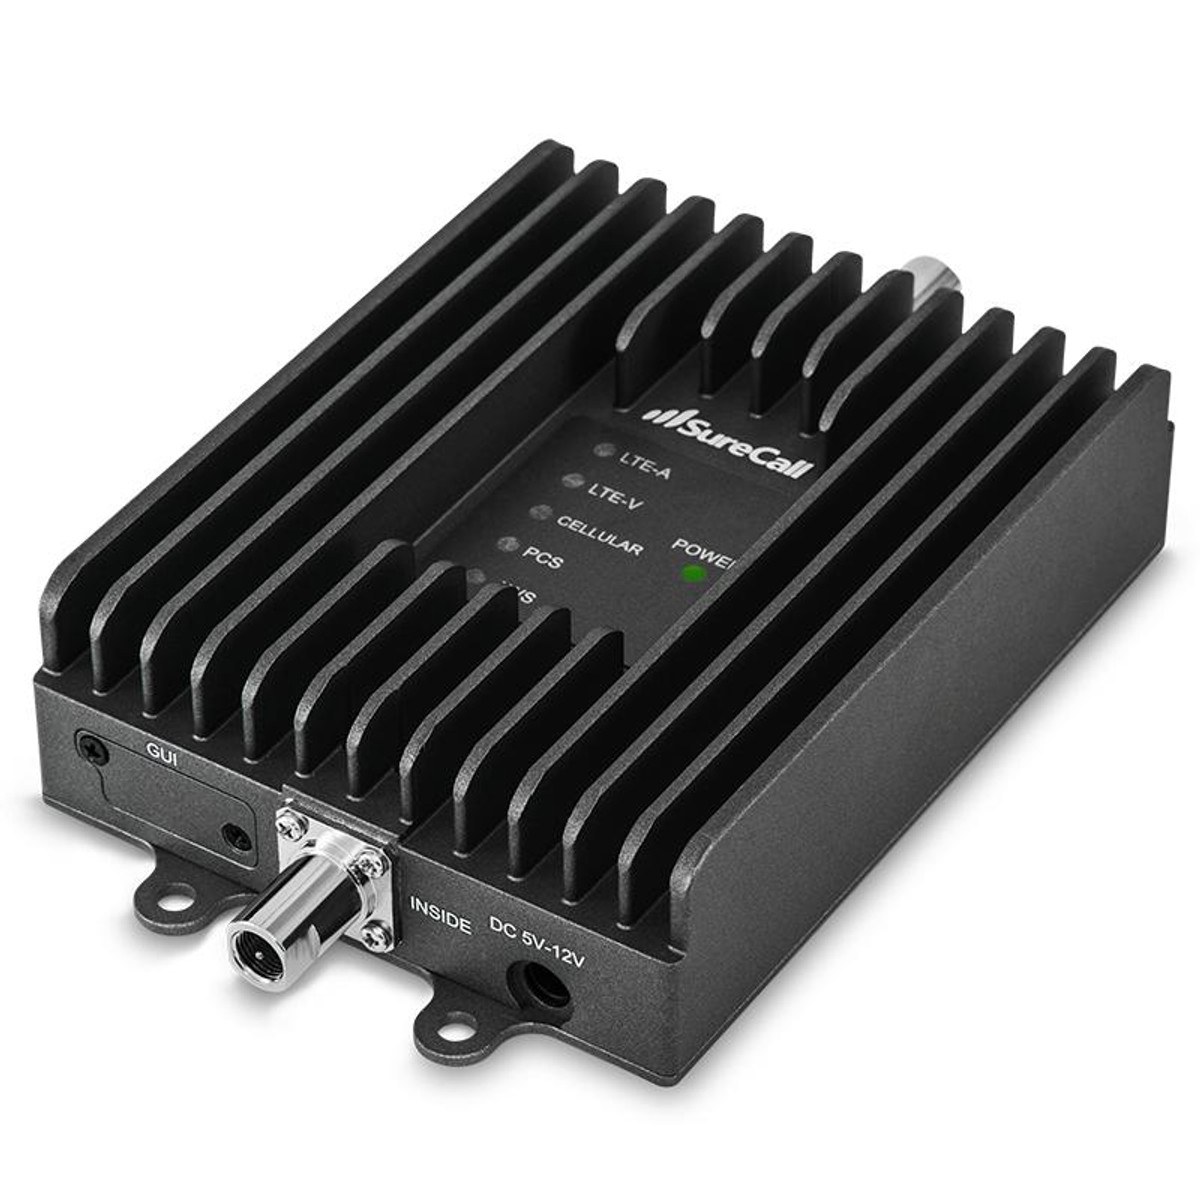 SureCall SureCall Fusion2Go 3.0 RV 4G Cell Phone Signal Booster Kit